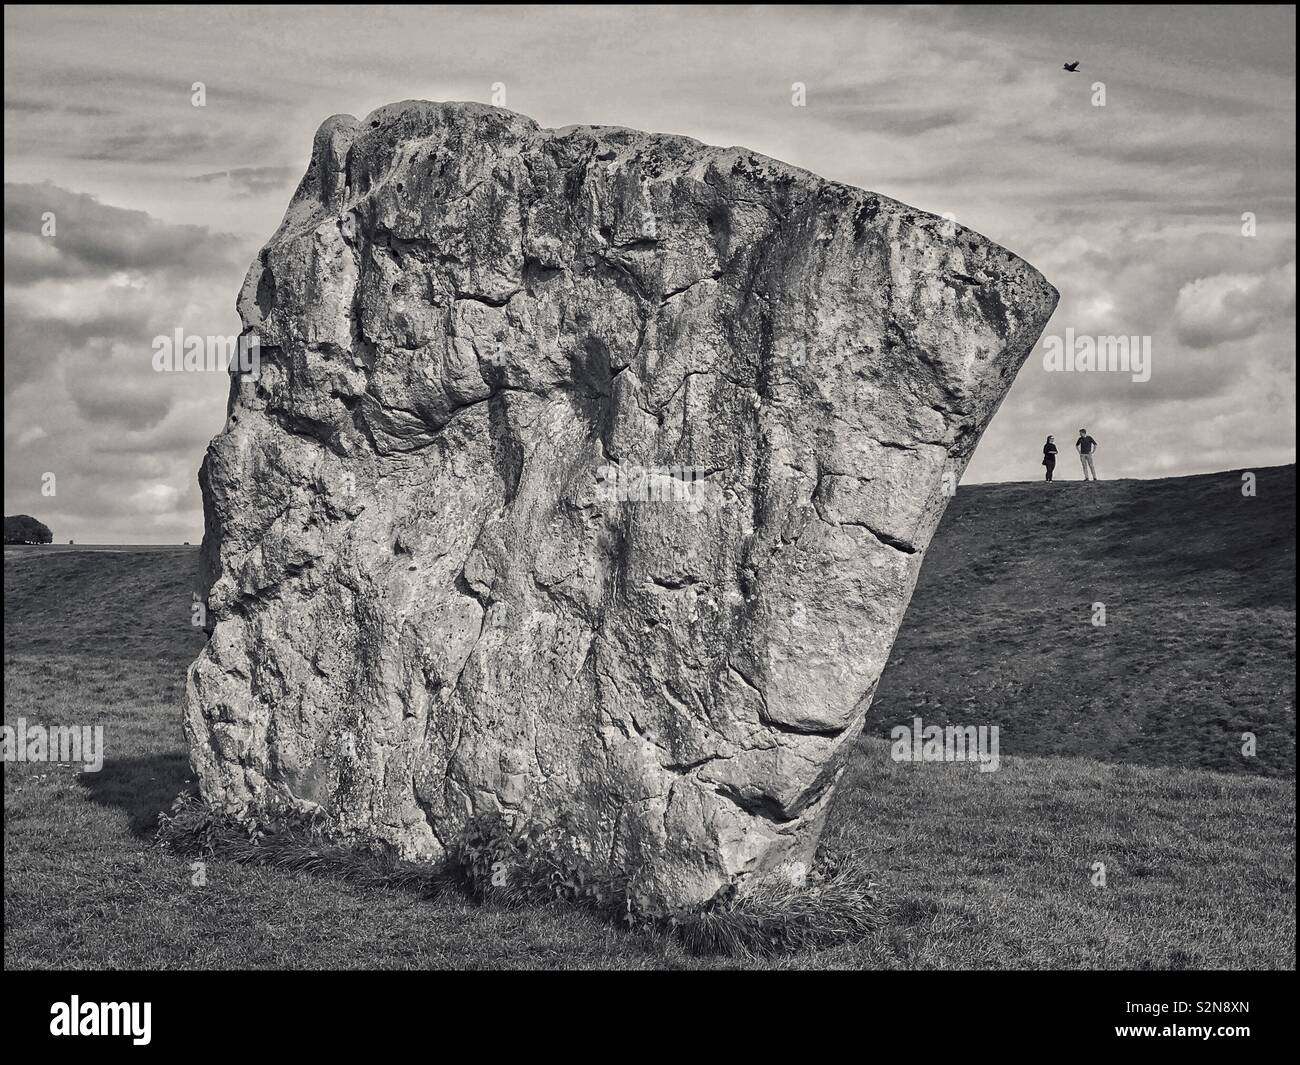 One of the large Standing Stones that forms the inner circle in the SE Section of the Avebury Stone Circle in Wiltshire, England. This stone forms part of the World's Largest Stone Circle. © C.HOSKINS - Stock Image